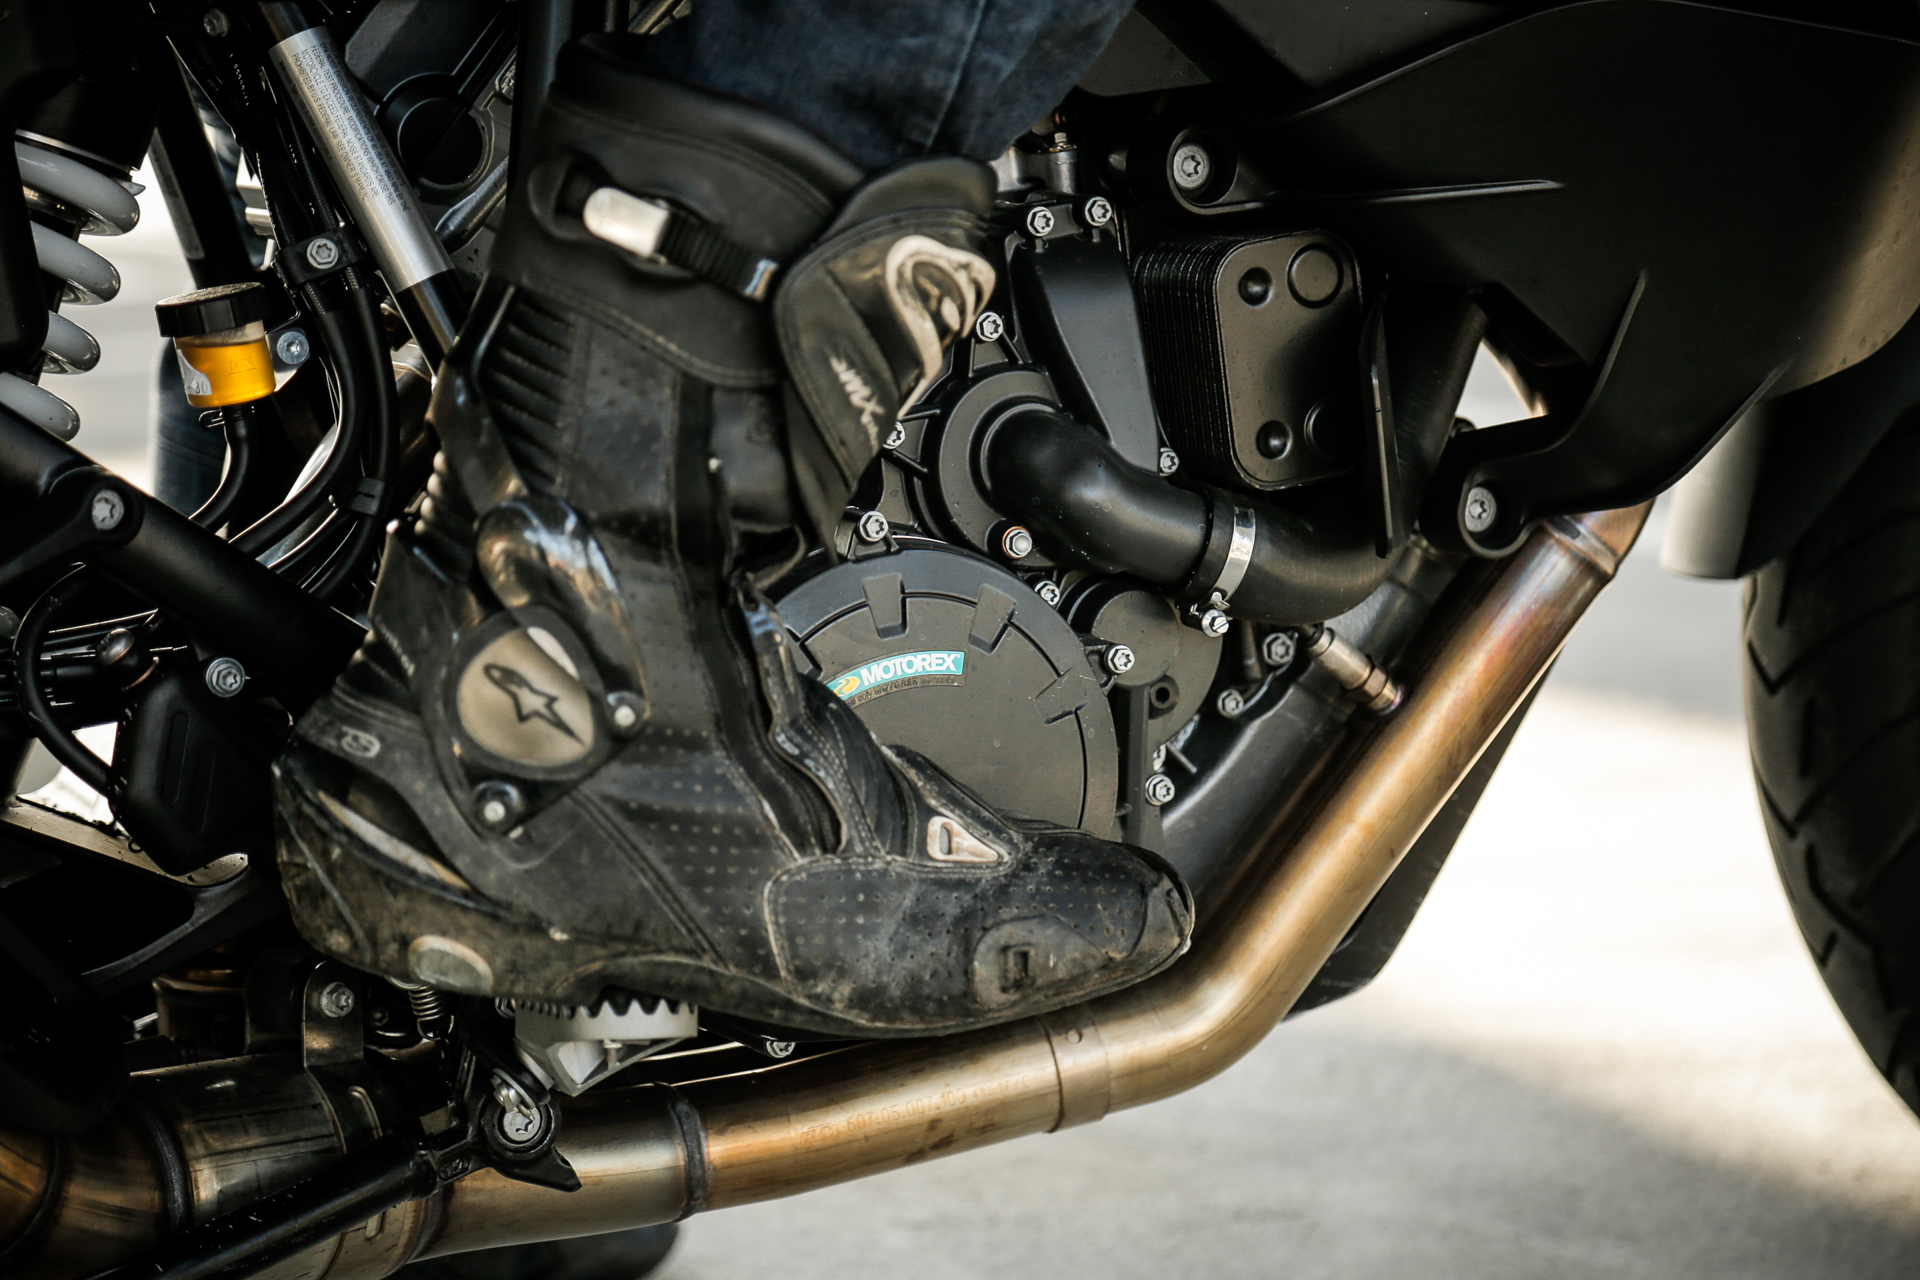 Motorcycle Safety Tips: How to Perform an Emergency Stop